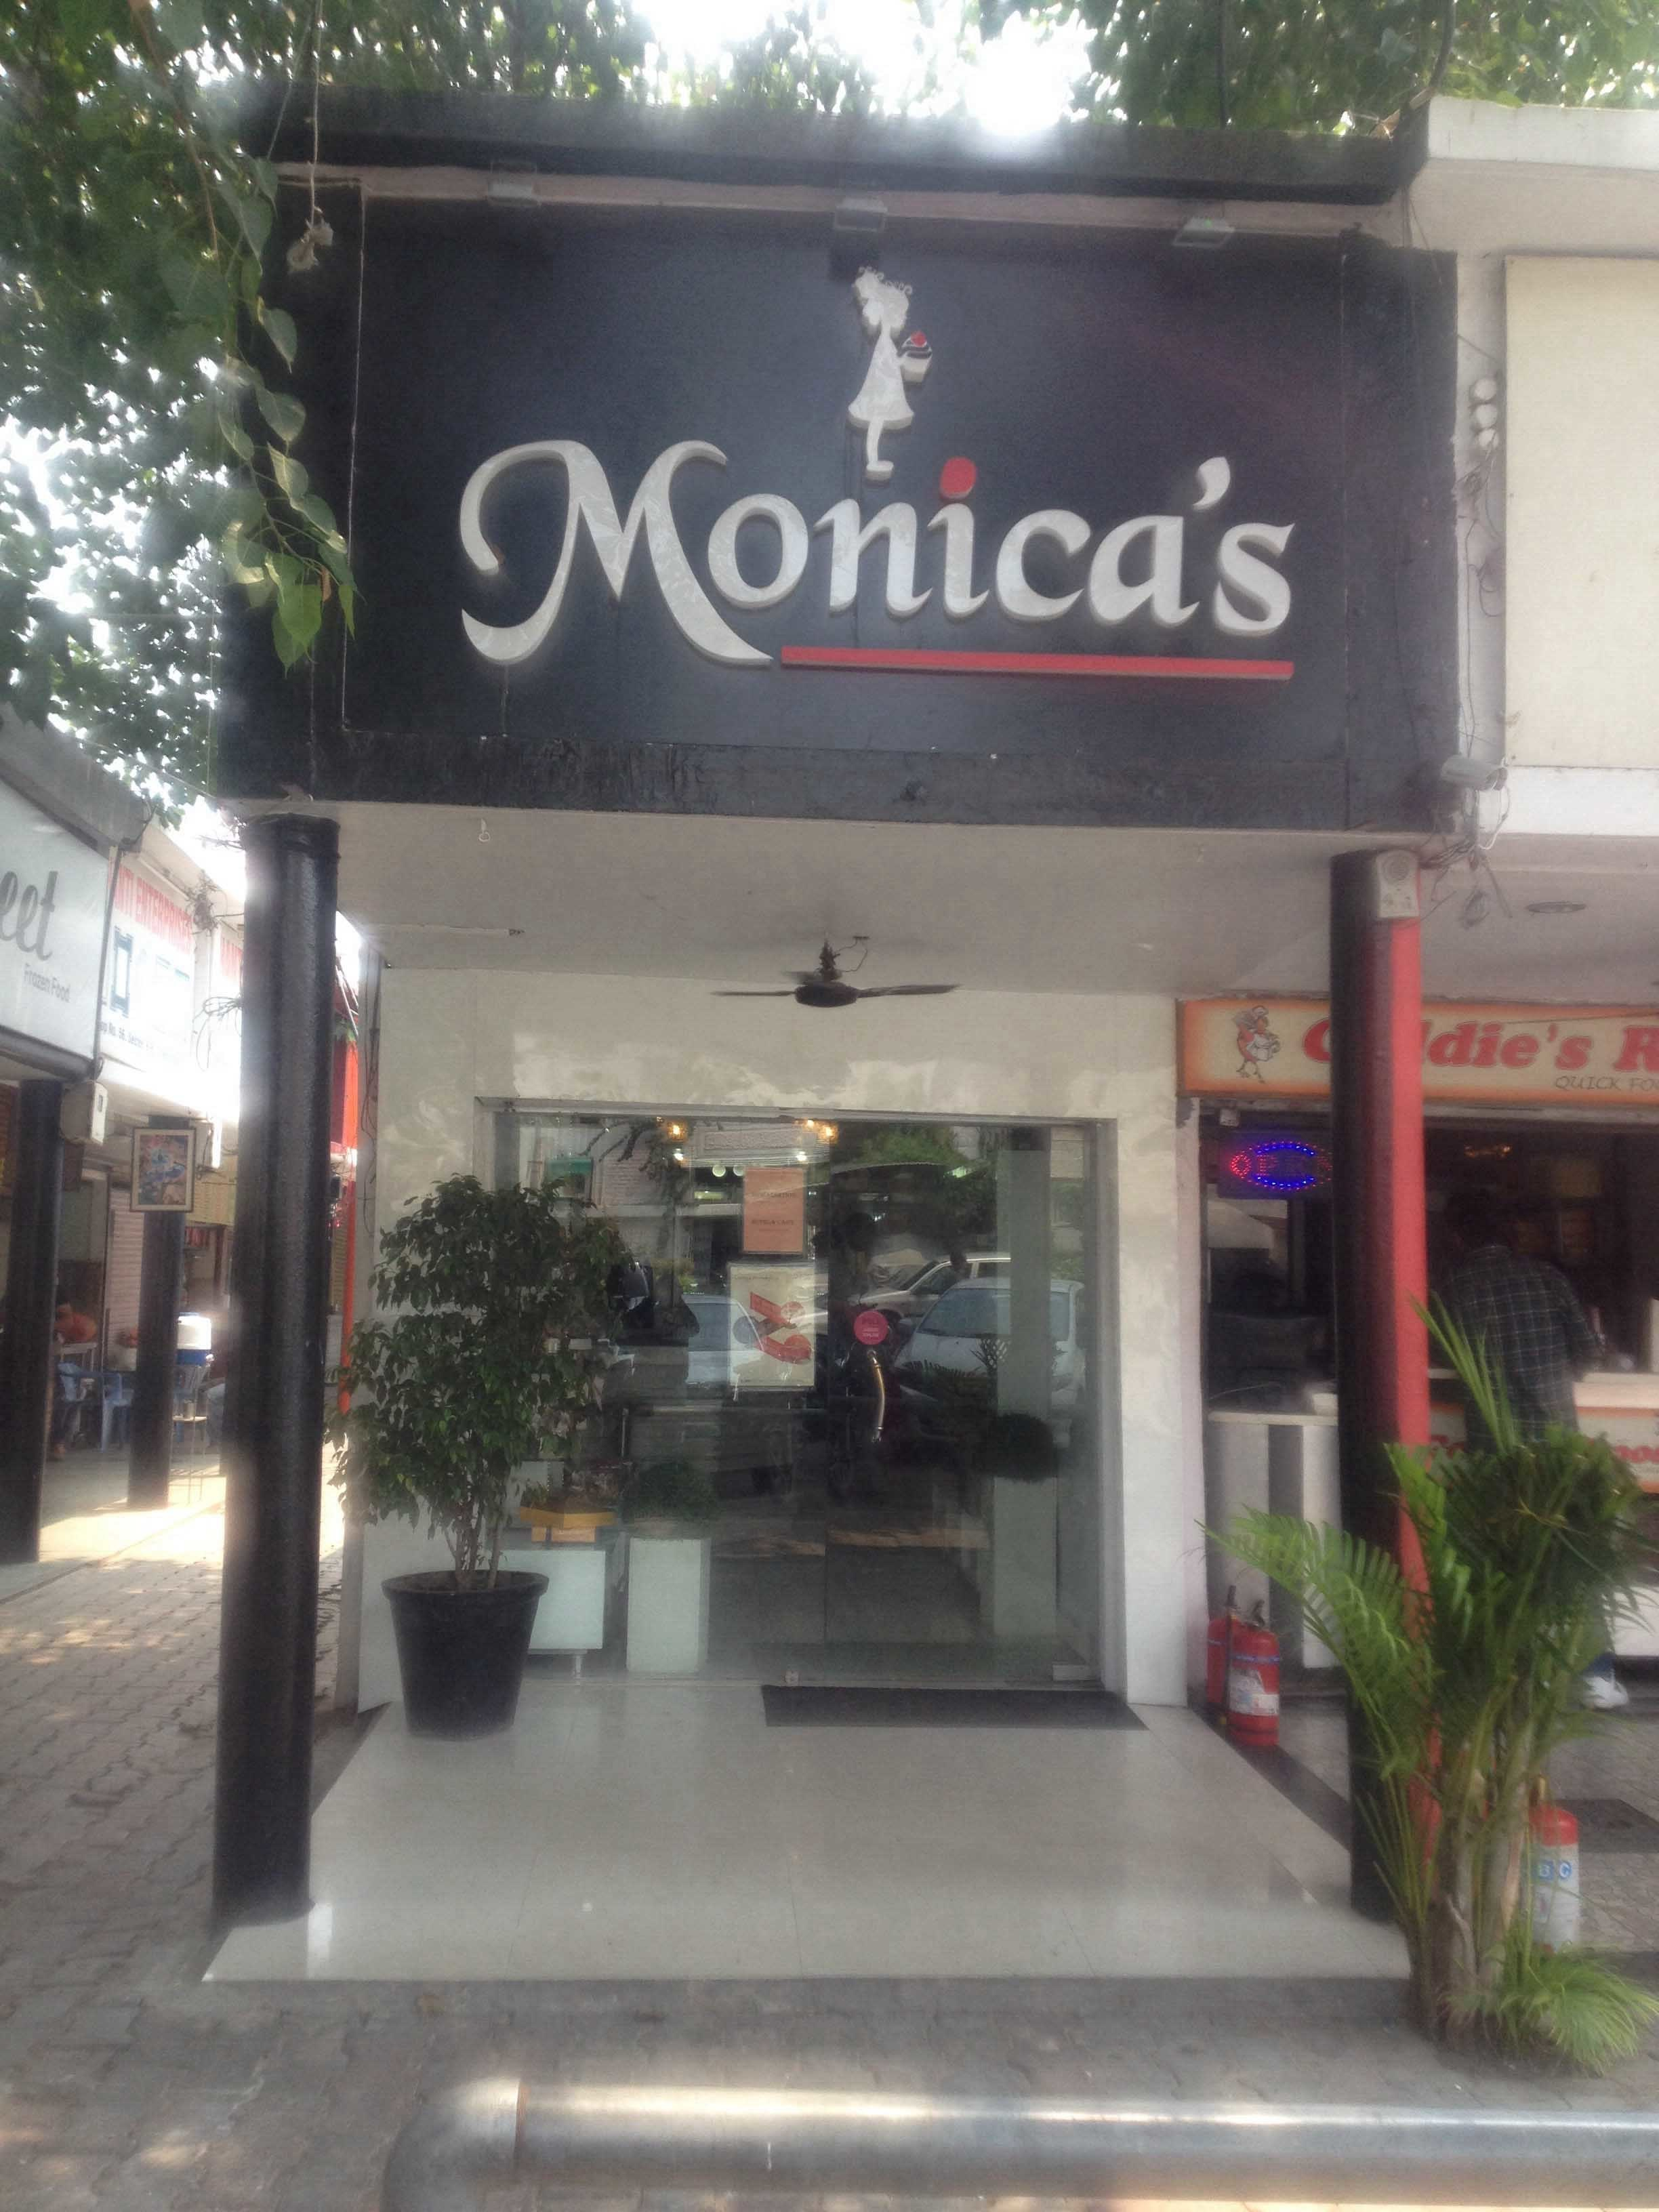 Monica's Puddings & Pies - Sector 8 - Chandigarh Image